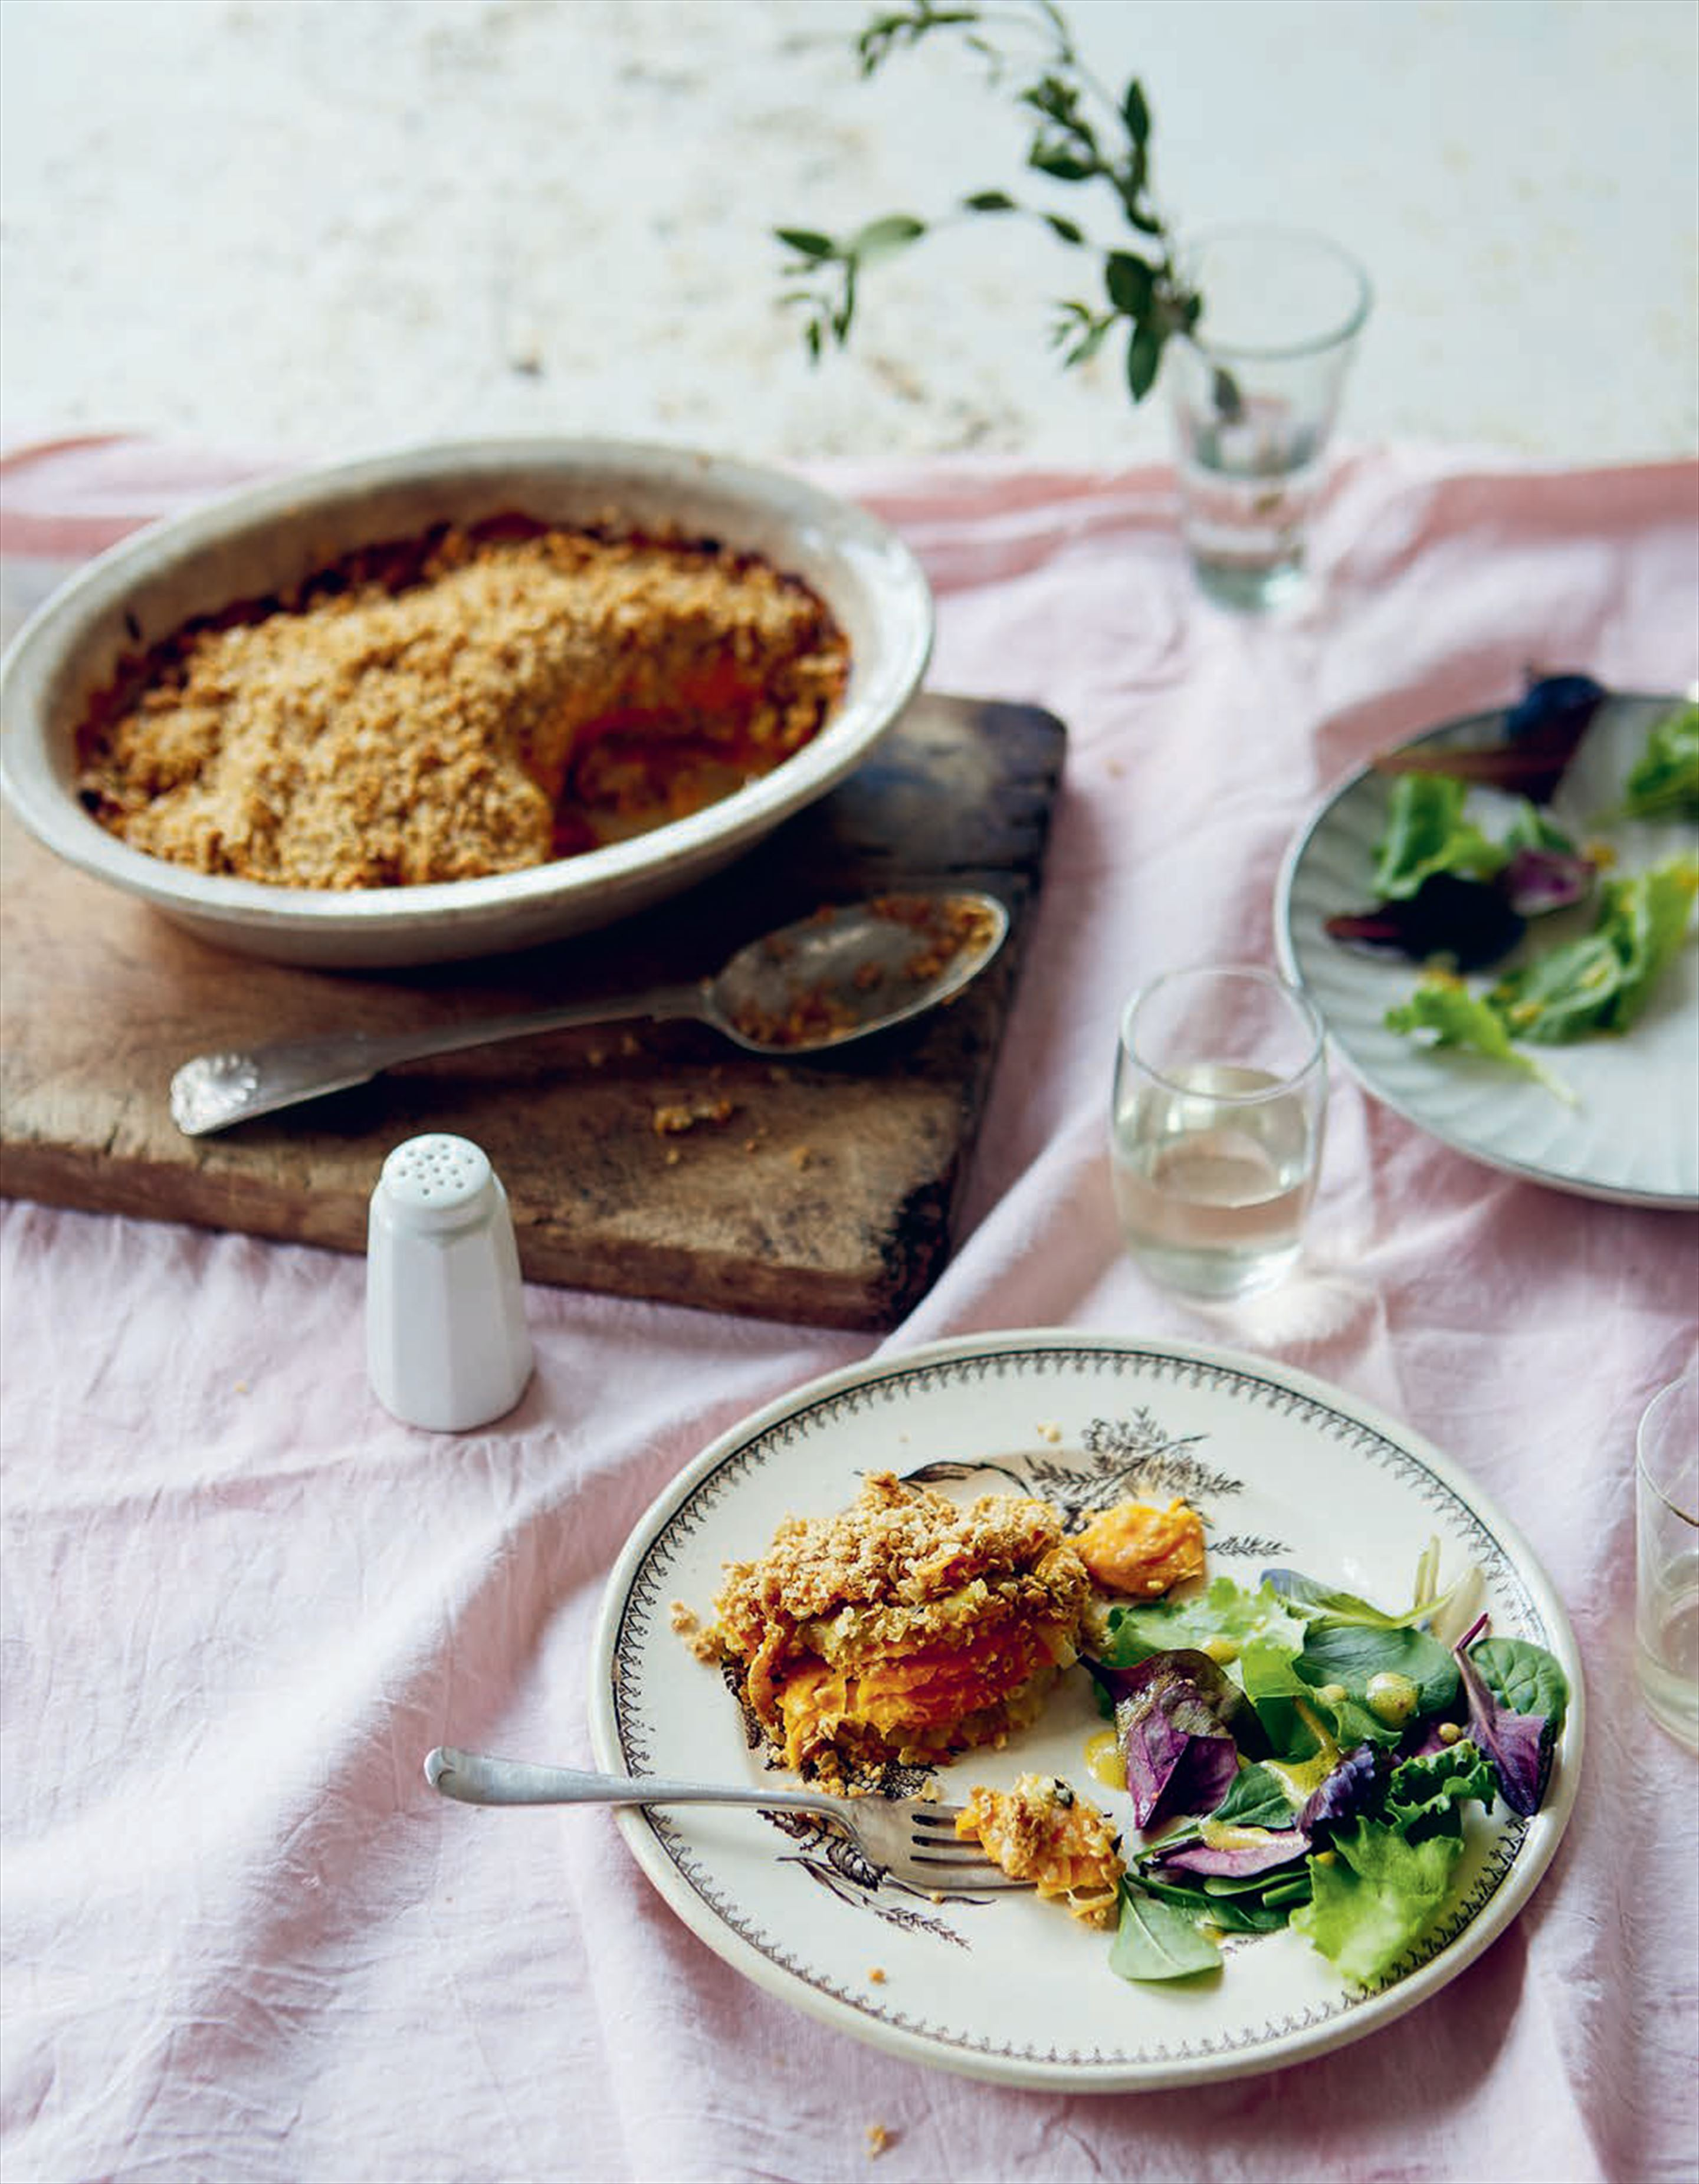 Sweet potato & leek gratin with oat crumble topping